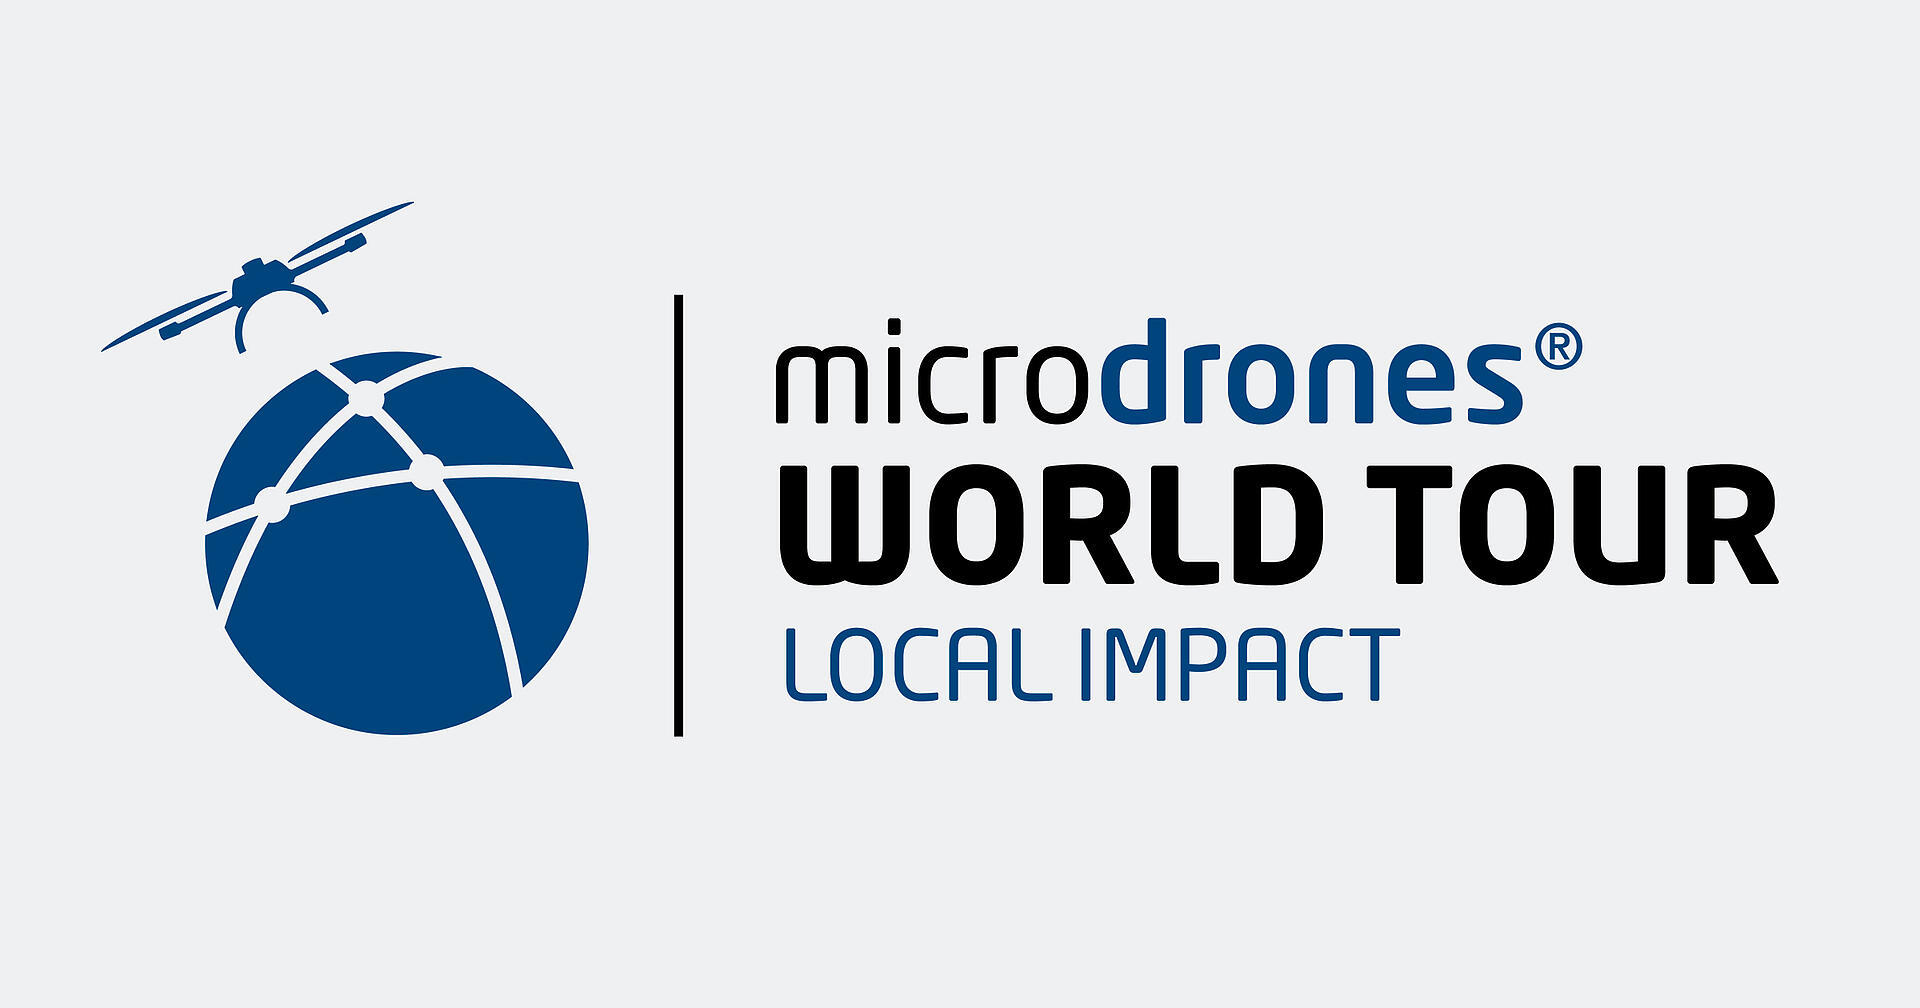 """Logo of the """"Microdrones World Tour - Local Impact"""" event"""